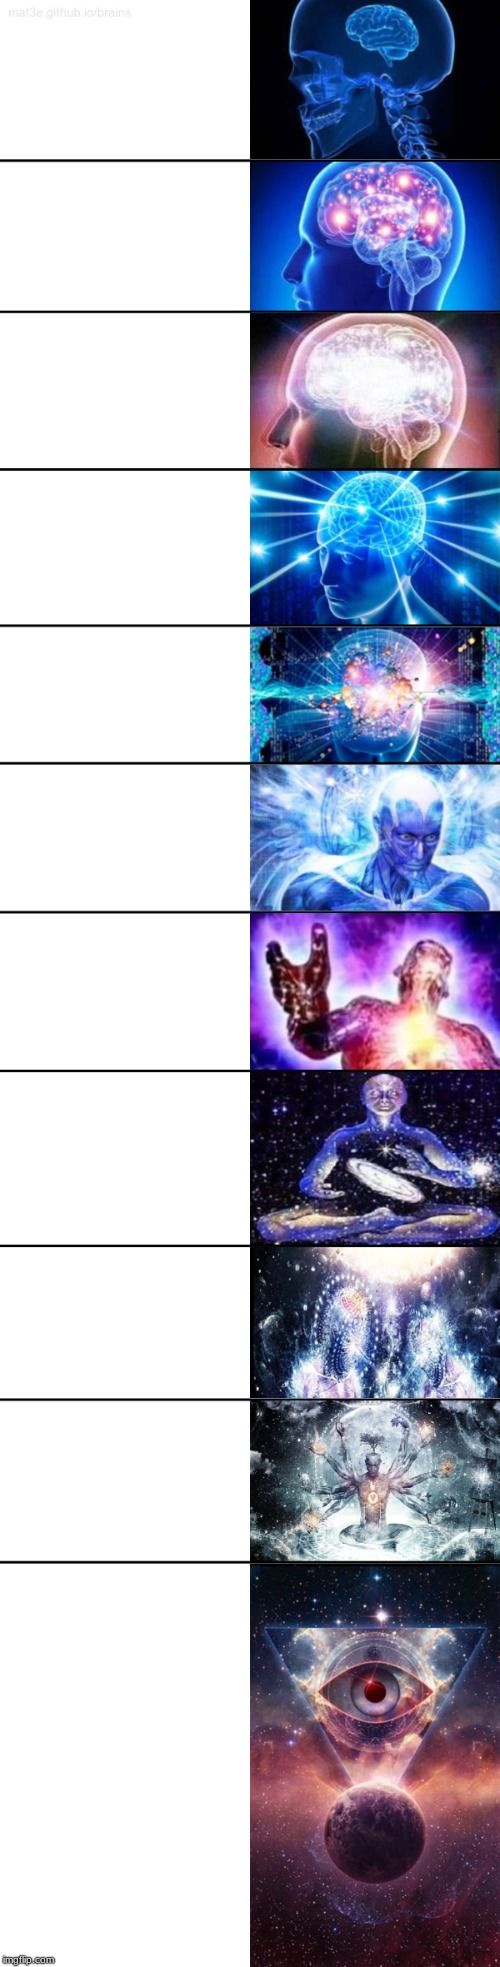 11-Tier Expanding Brain | image tagged in 11-tier expanding brain | made w/ Imgflip meme maker